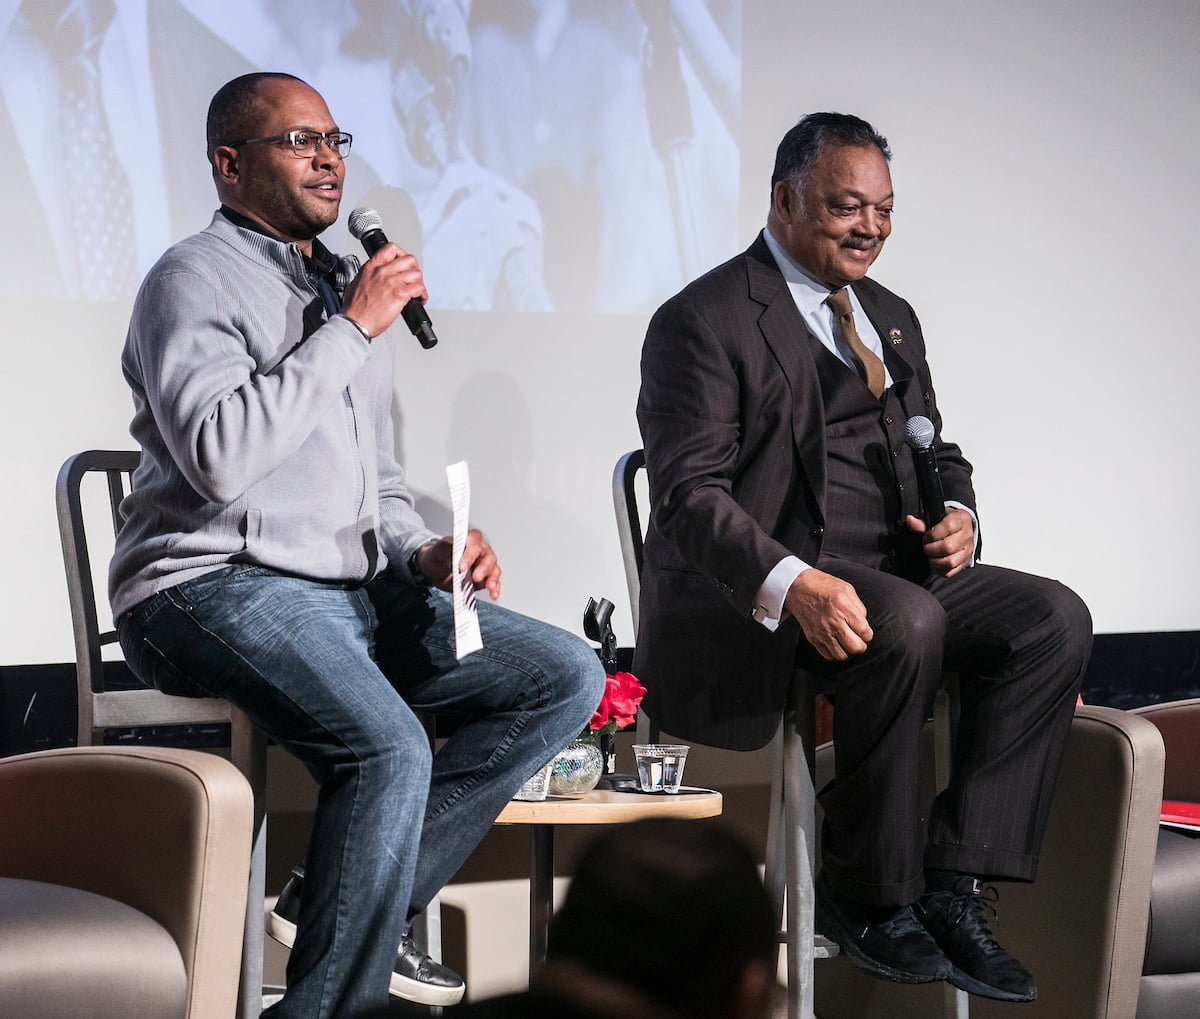 Horace Hall, left, associate professor in the College of Education at DePaul University and civil rights leader, the Rev. Jesse L. Jackson Sr., kick off a discussion at DePaul University.